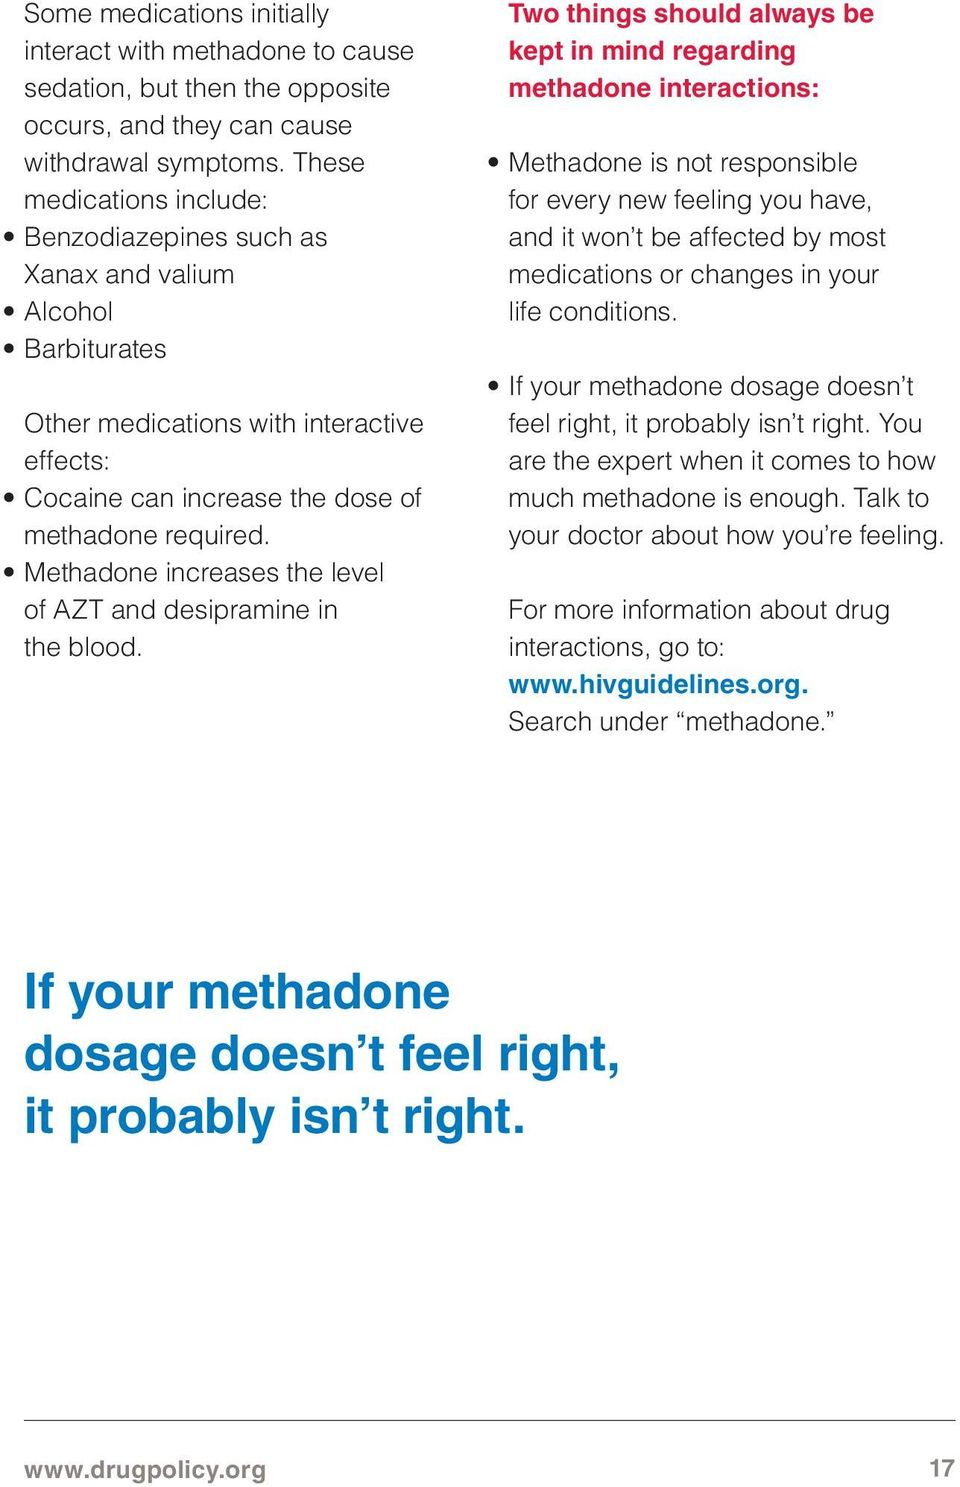 Methadone increases the level of AZT and desipramine in the blood.